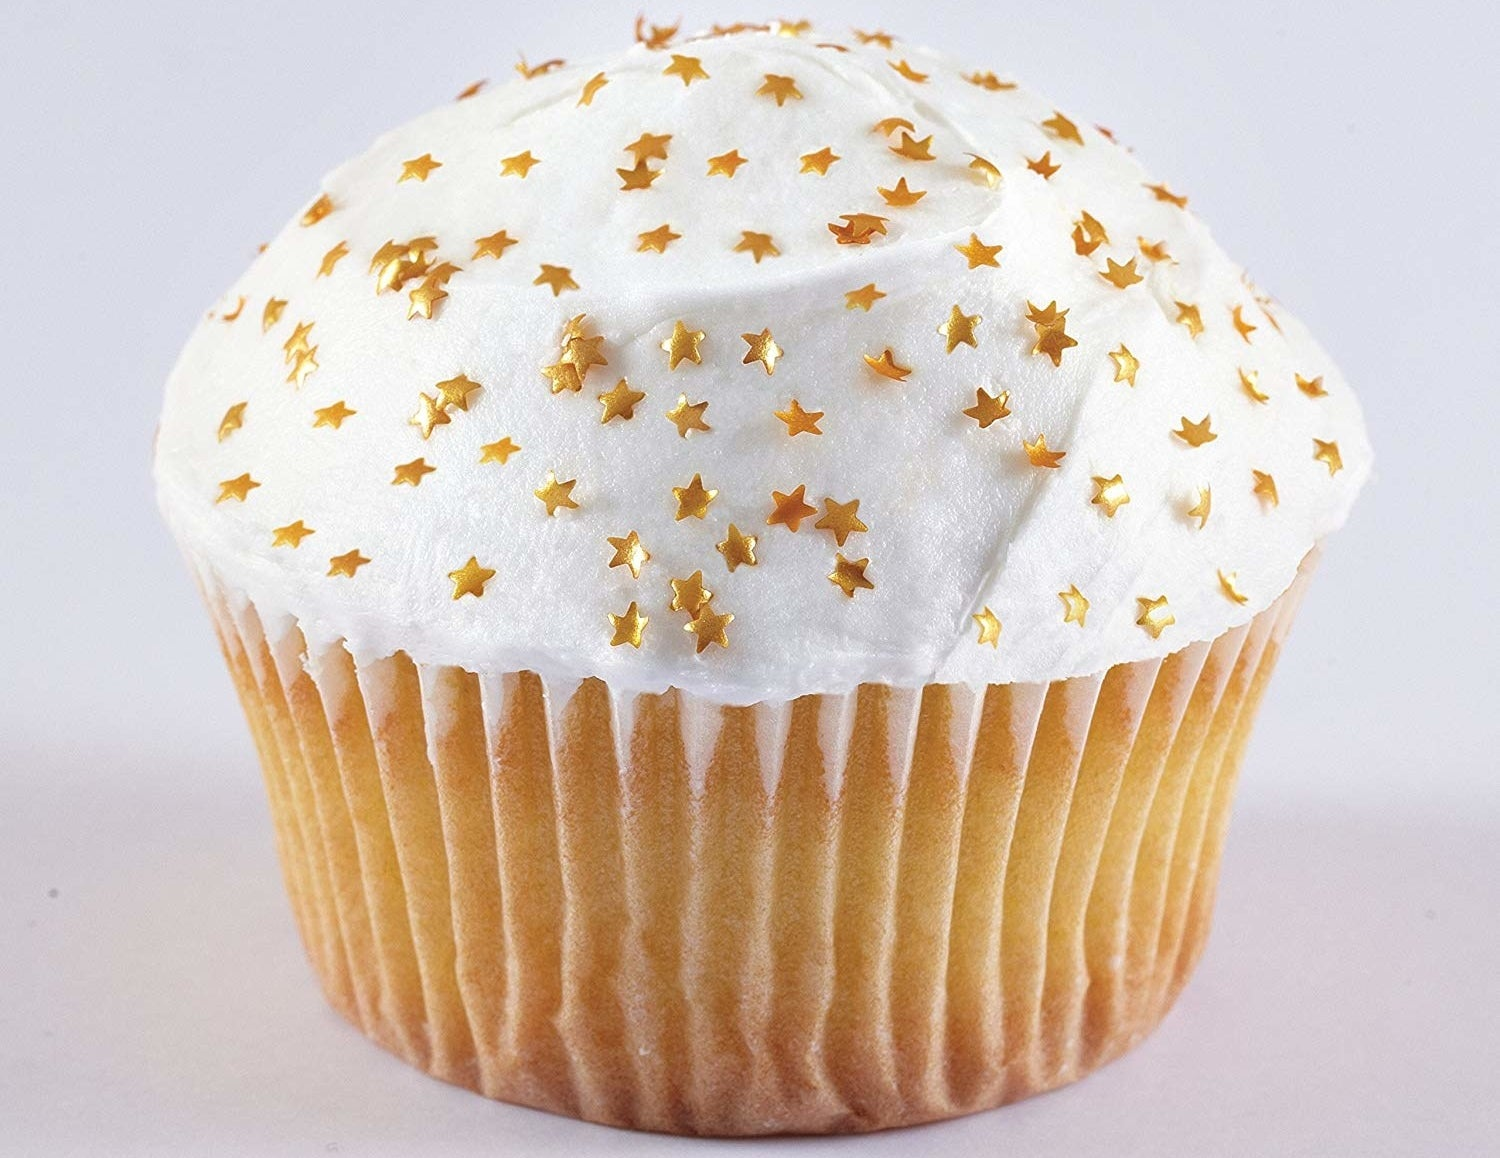 The edible gold stars on top of a cupcake